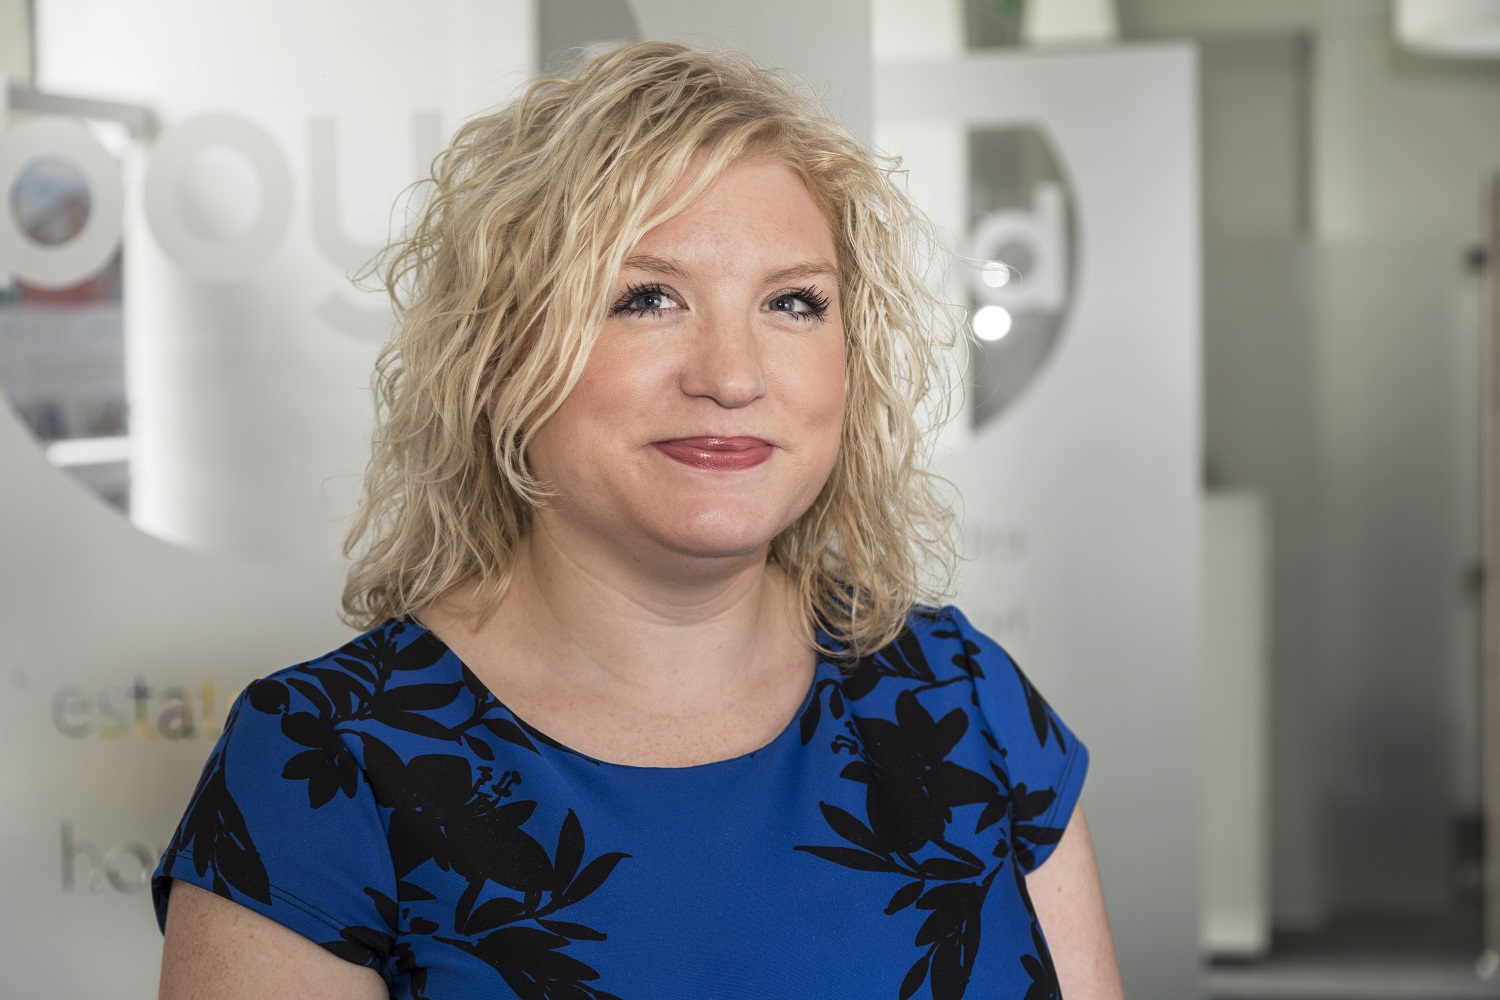 Boyd Legal appoints new director from within